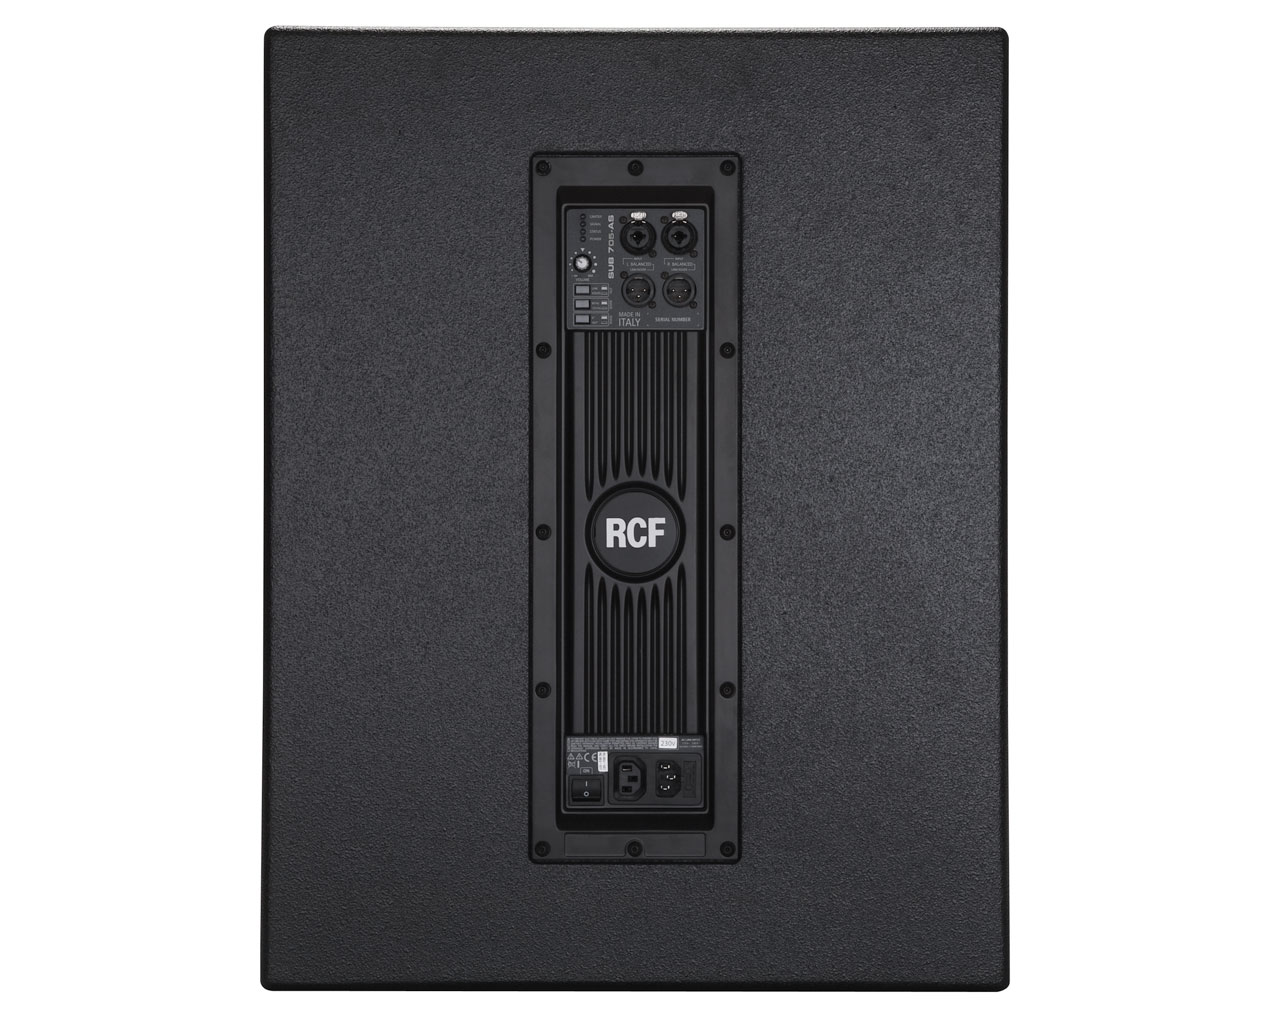 rcf sub702as compact 12 inch 700w digital amplifier subwoofer with soft limiter rcf13 sub702as. Black Bedroom Furniture Sets. Home Design Ideas